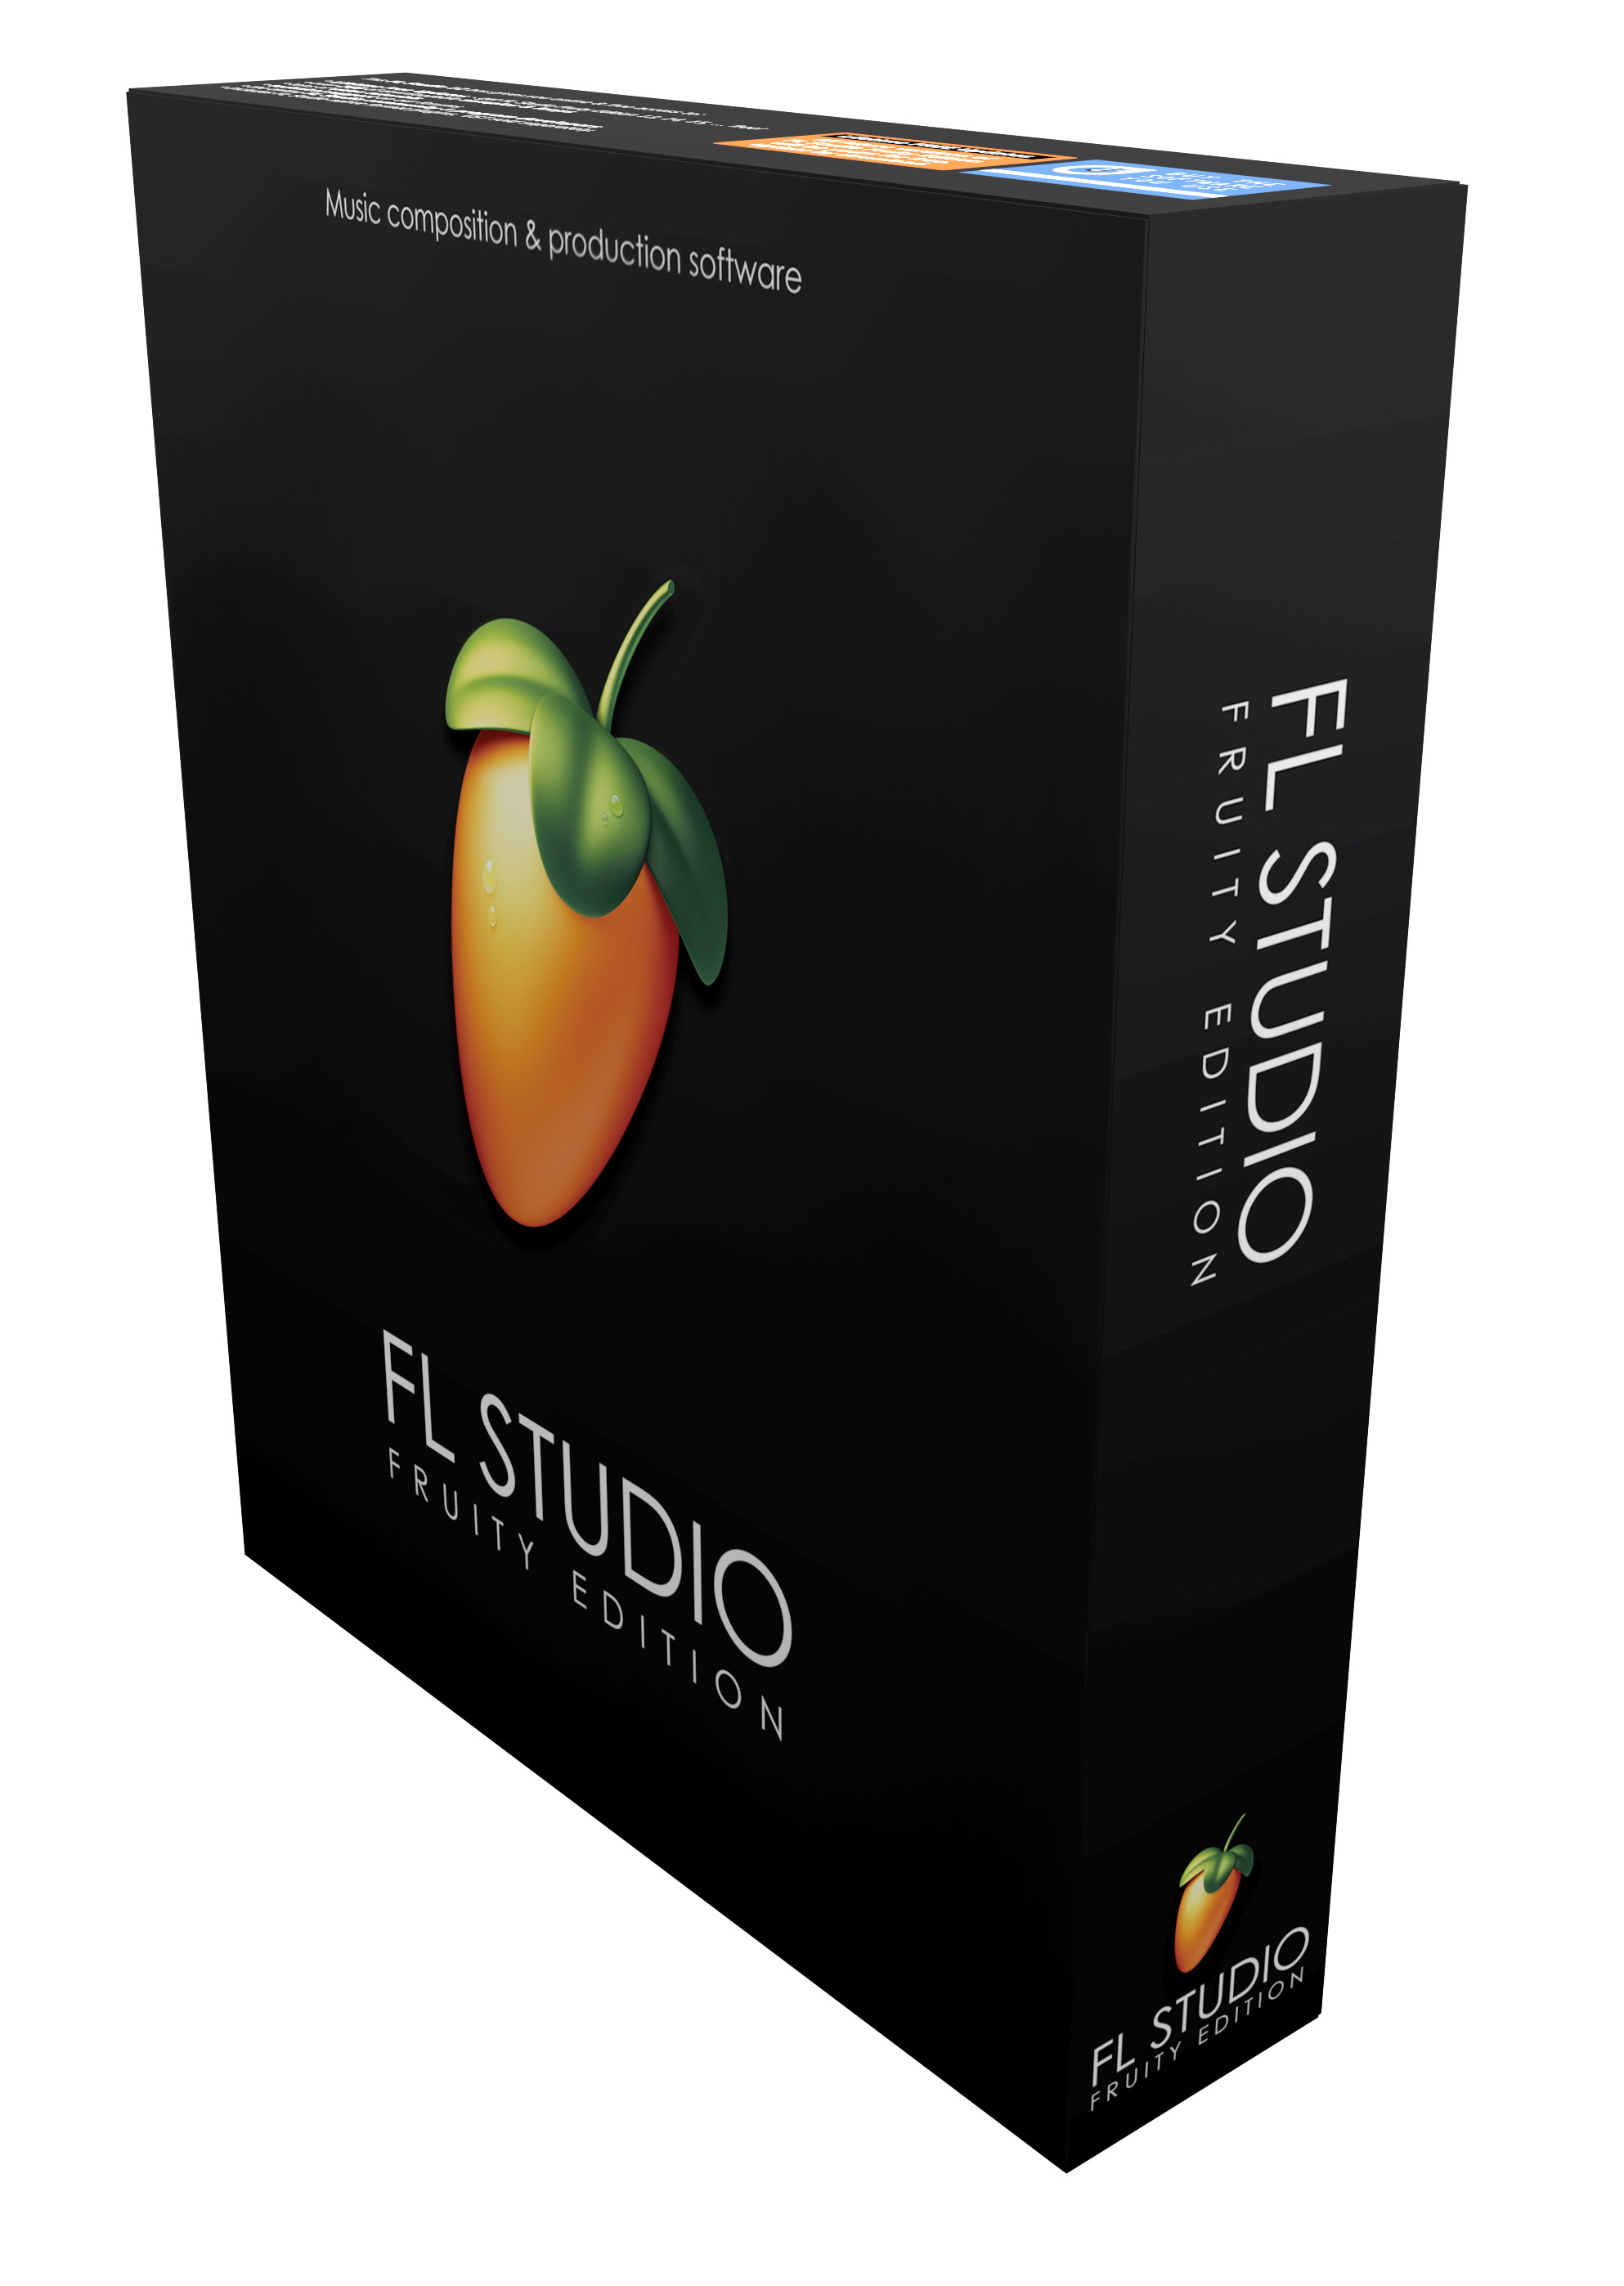 FL Studio 12 Fruity Edition WIN